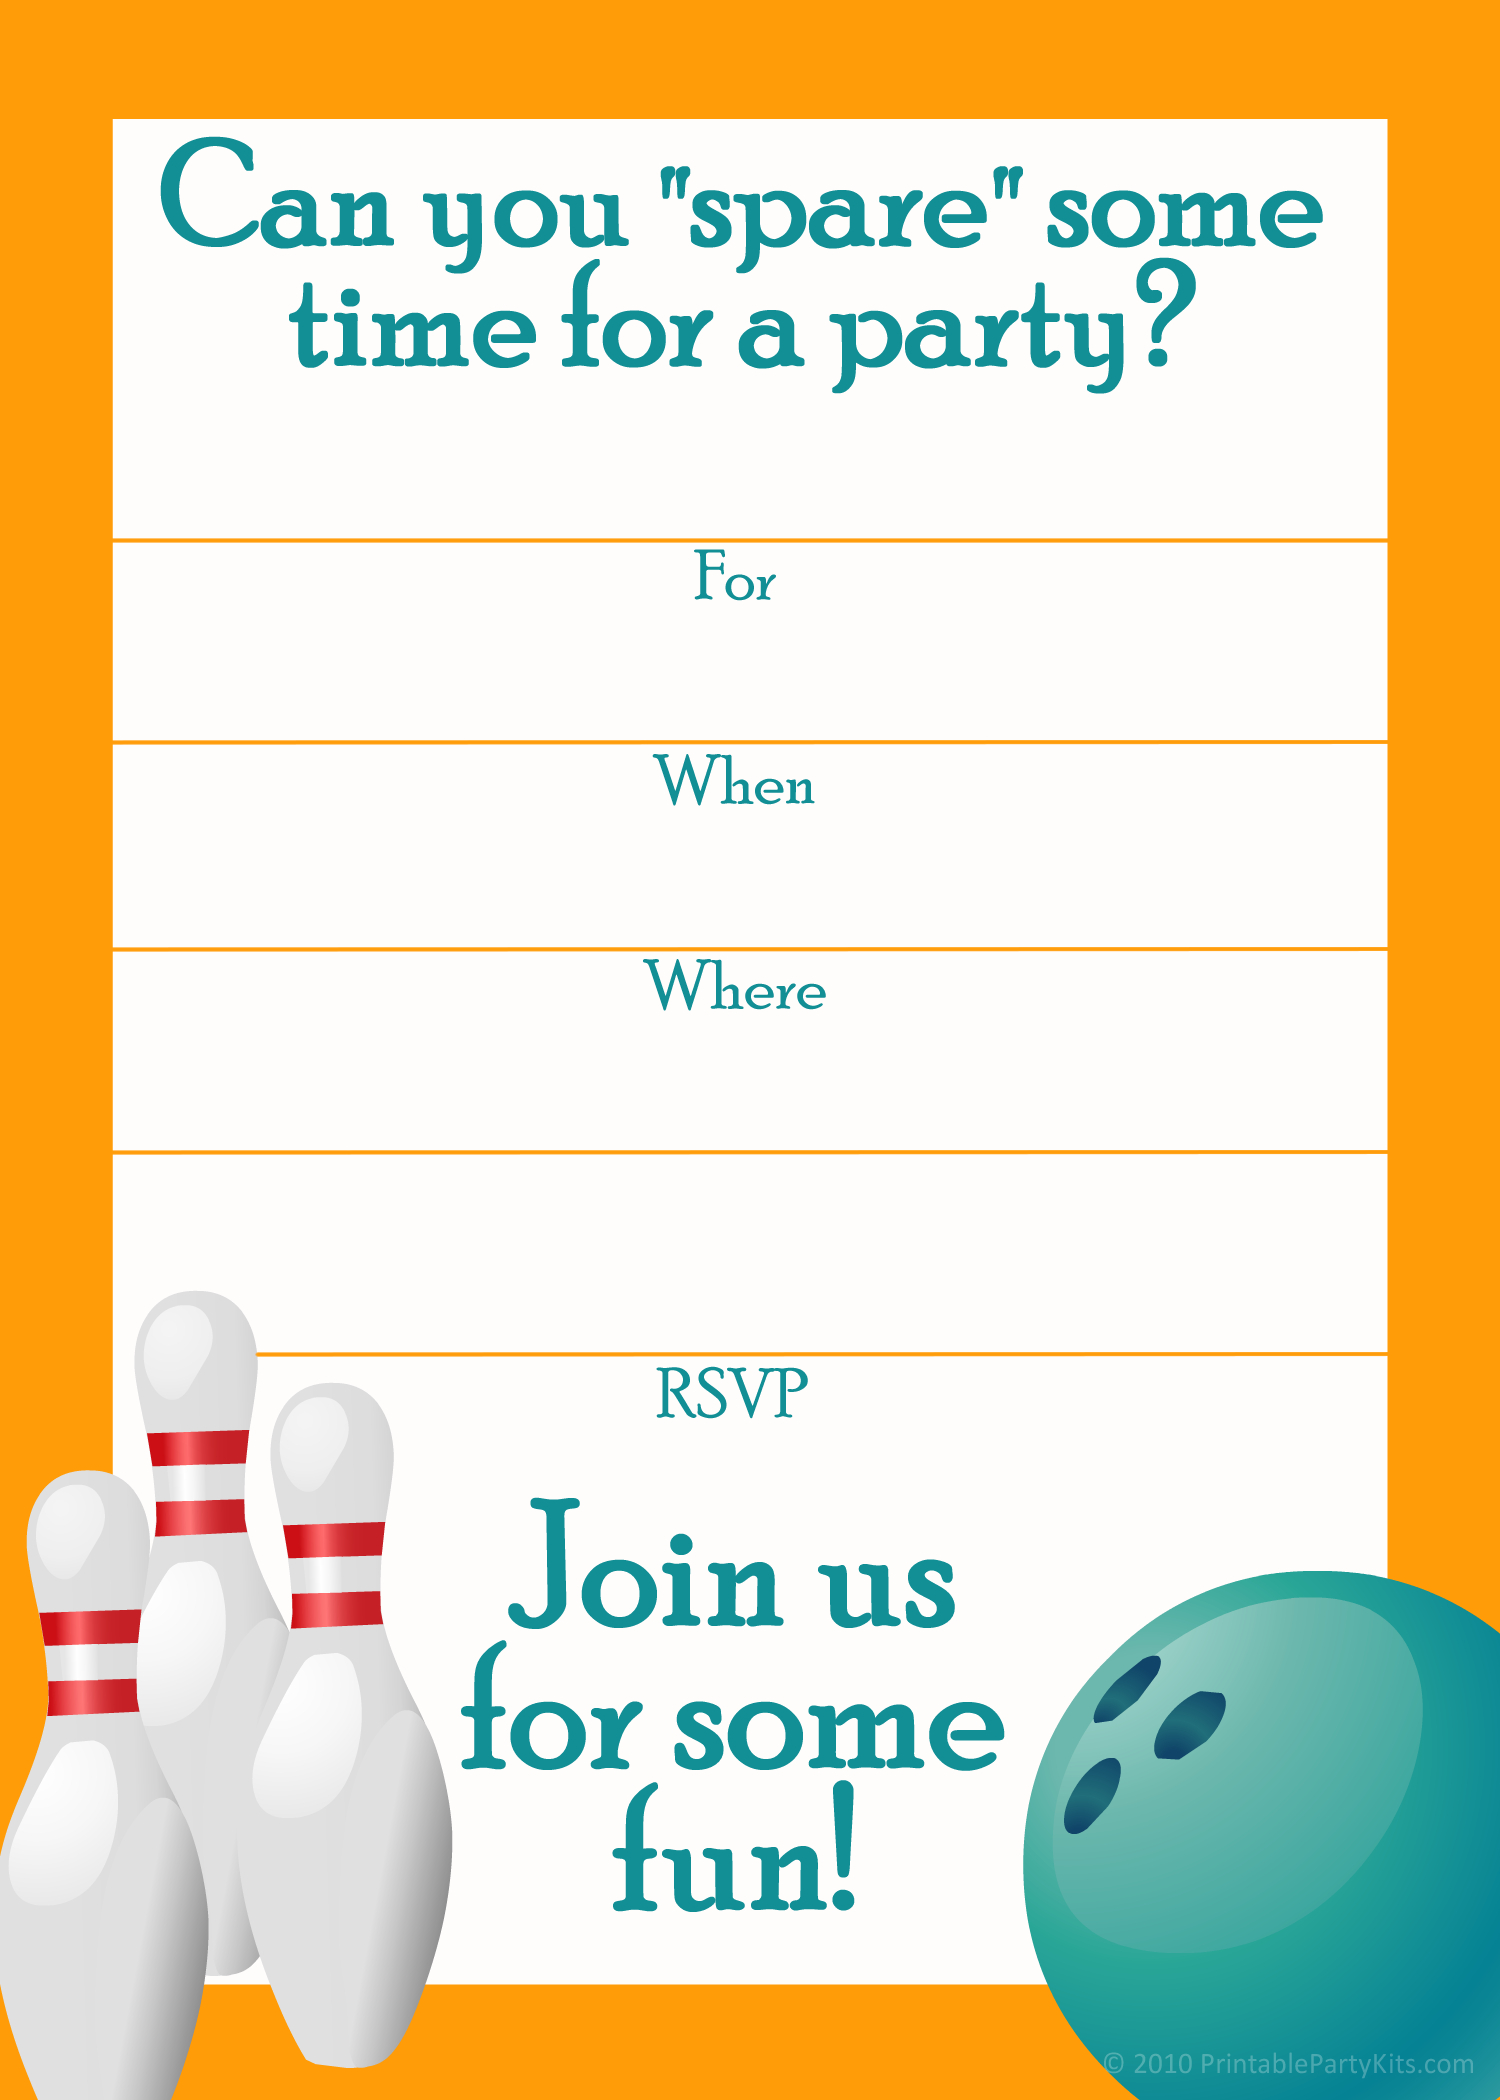 Free Printable Sports Birthday Party Invitations Templates | Party - Free Printable Bowling Birthday Party Invitations